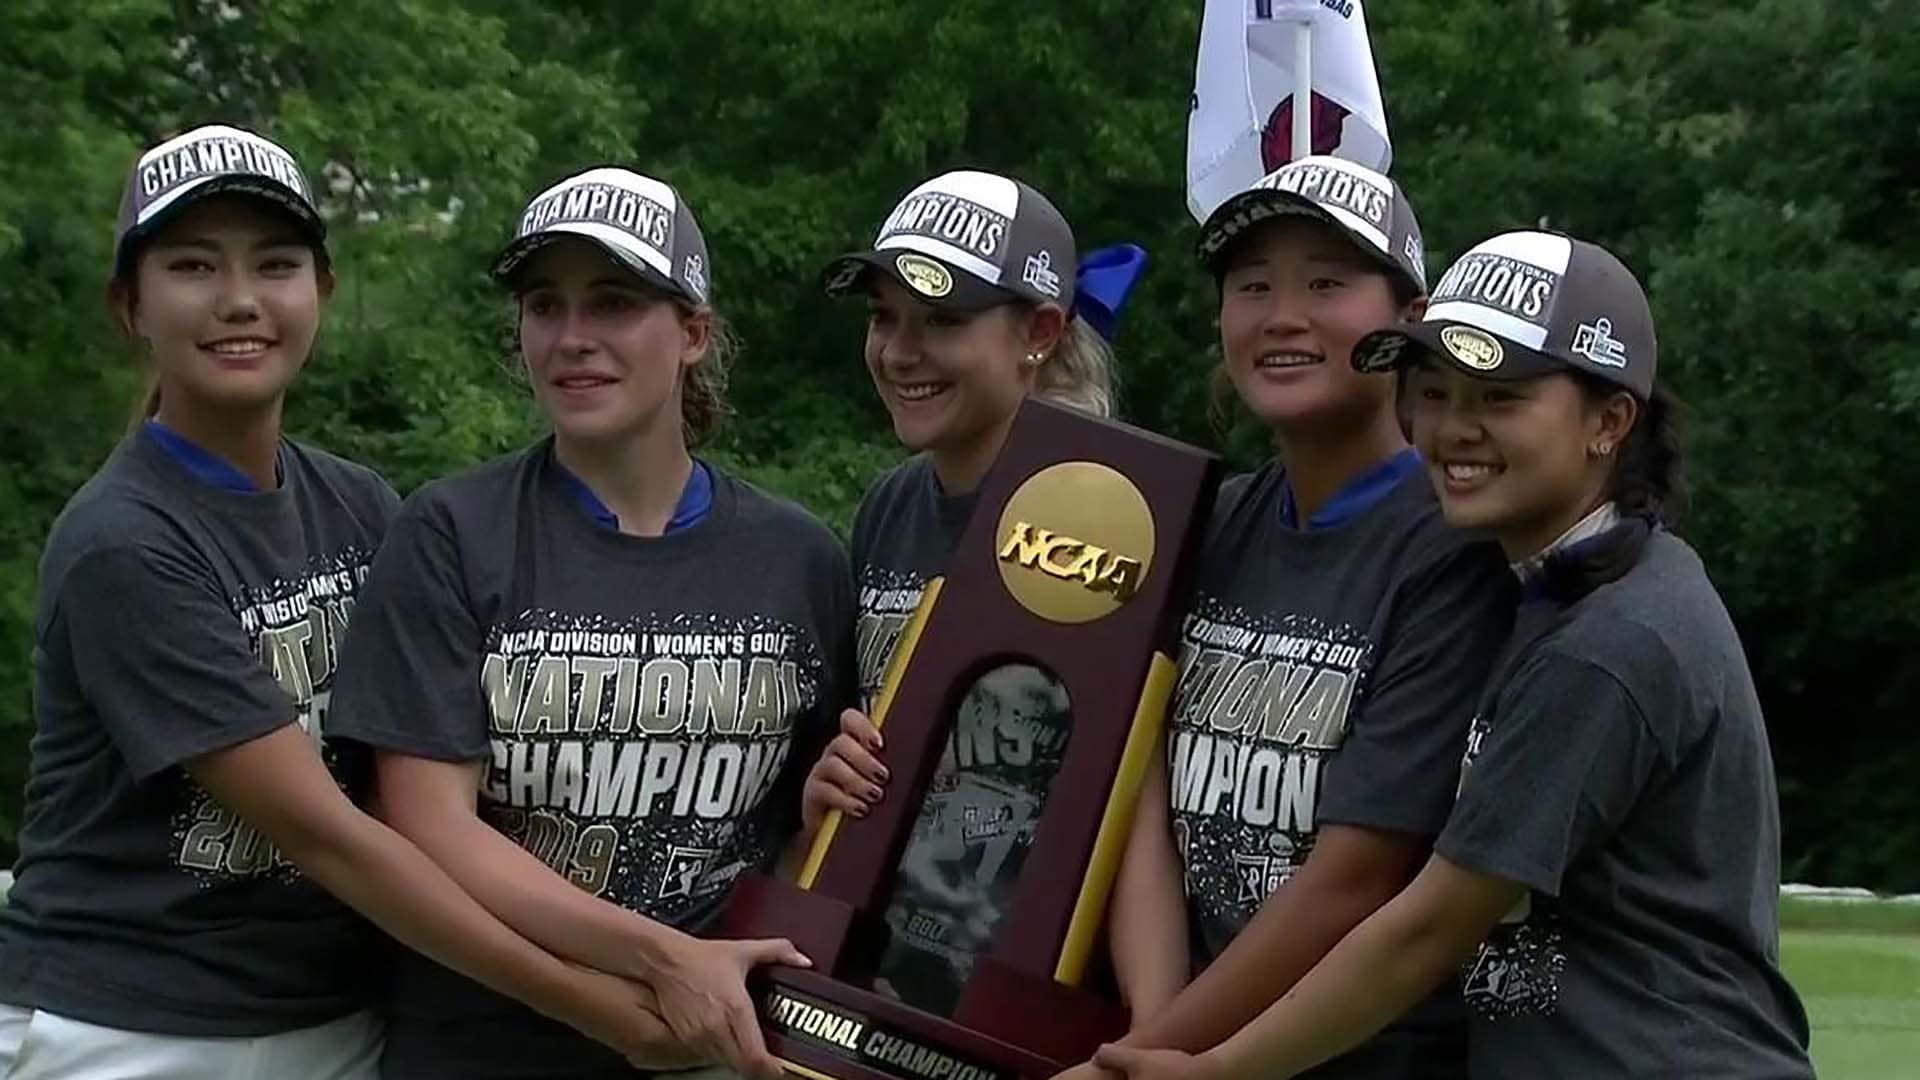 The victorious 2019 Duke Women's Golf team